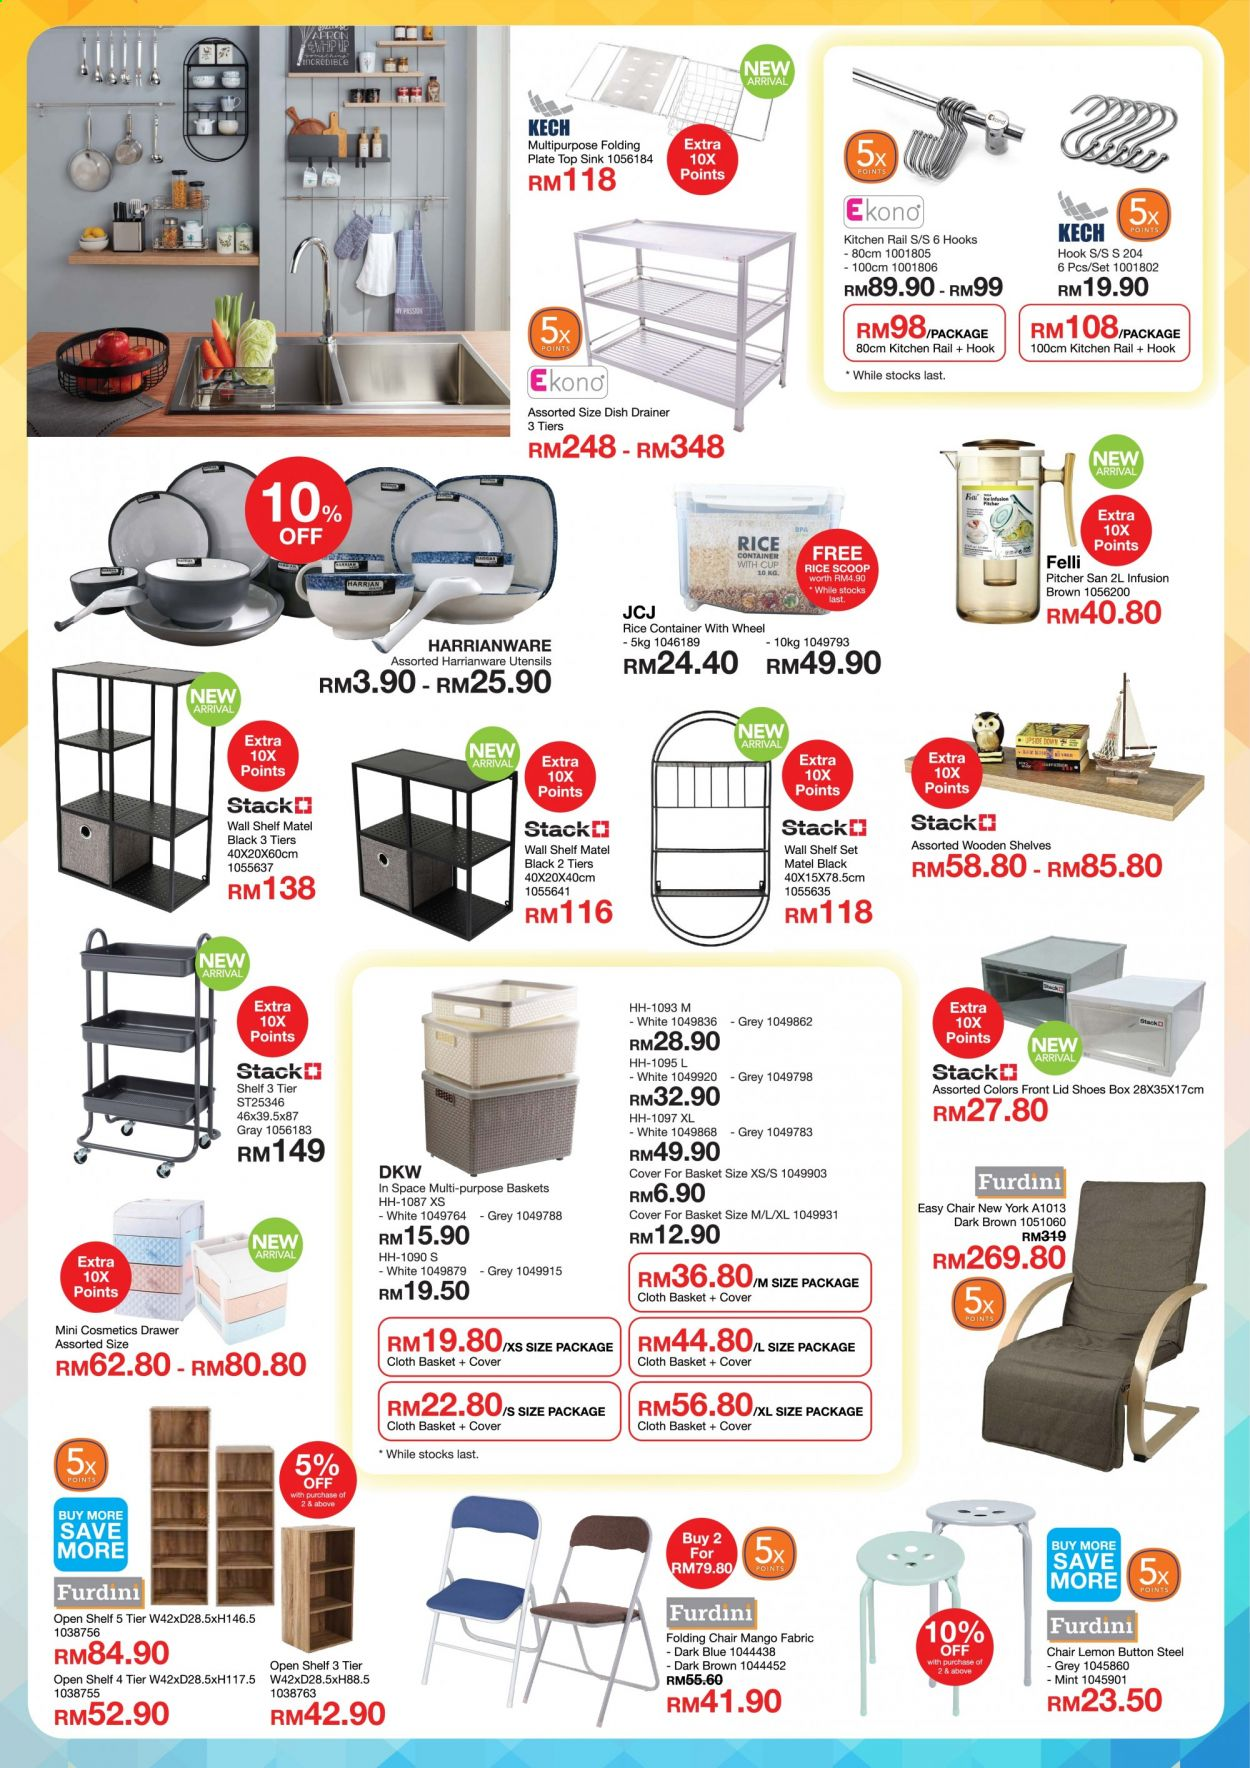 Iklan HomePro - 05.05.2020 - 30.06.2020 - Produk jualan - rice, apron, basket, box, container, cover, drawer, folding chair, chair, hook, kitchen, lemon, lid, mango, mint, pitcher, plate, rail, shelves, shoes, sink, stack, top, utensils, wall shelf. Halaman 3.